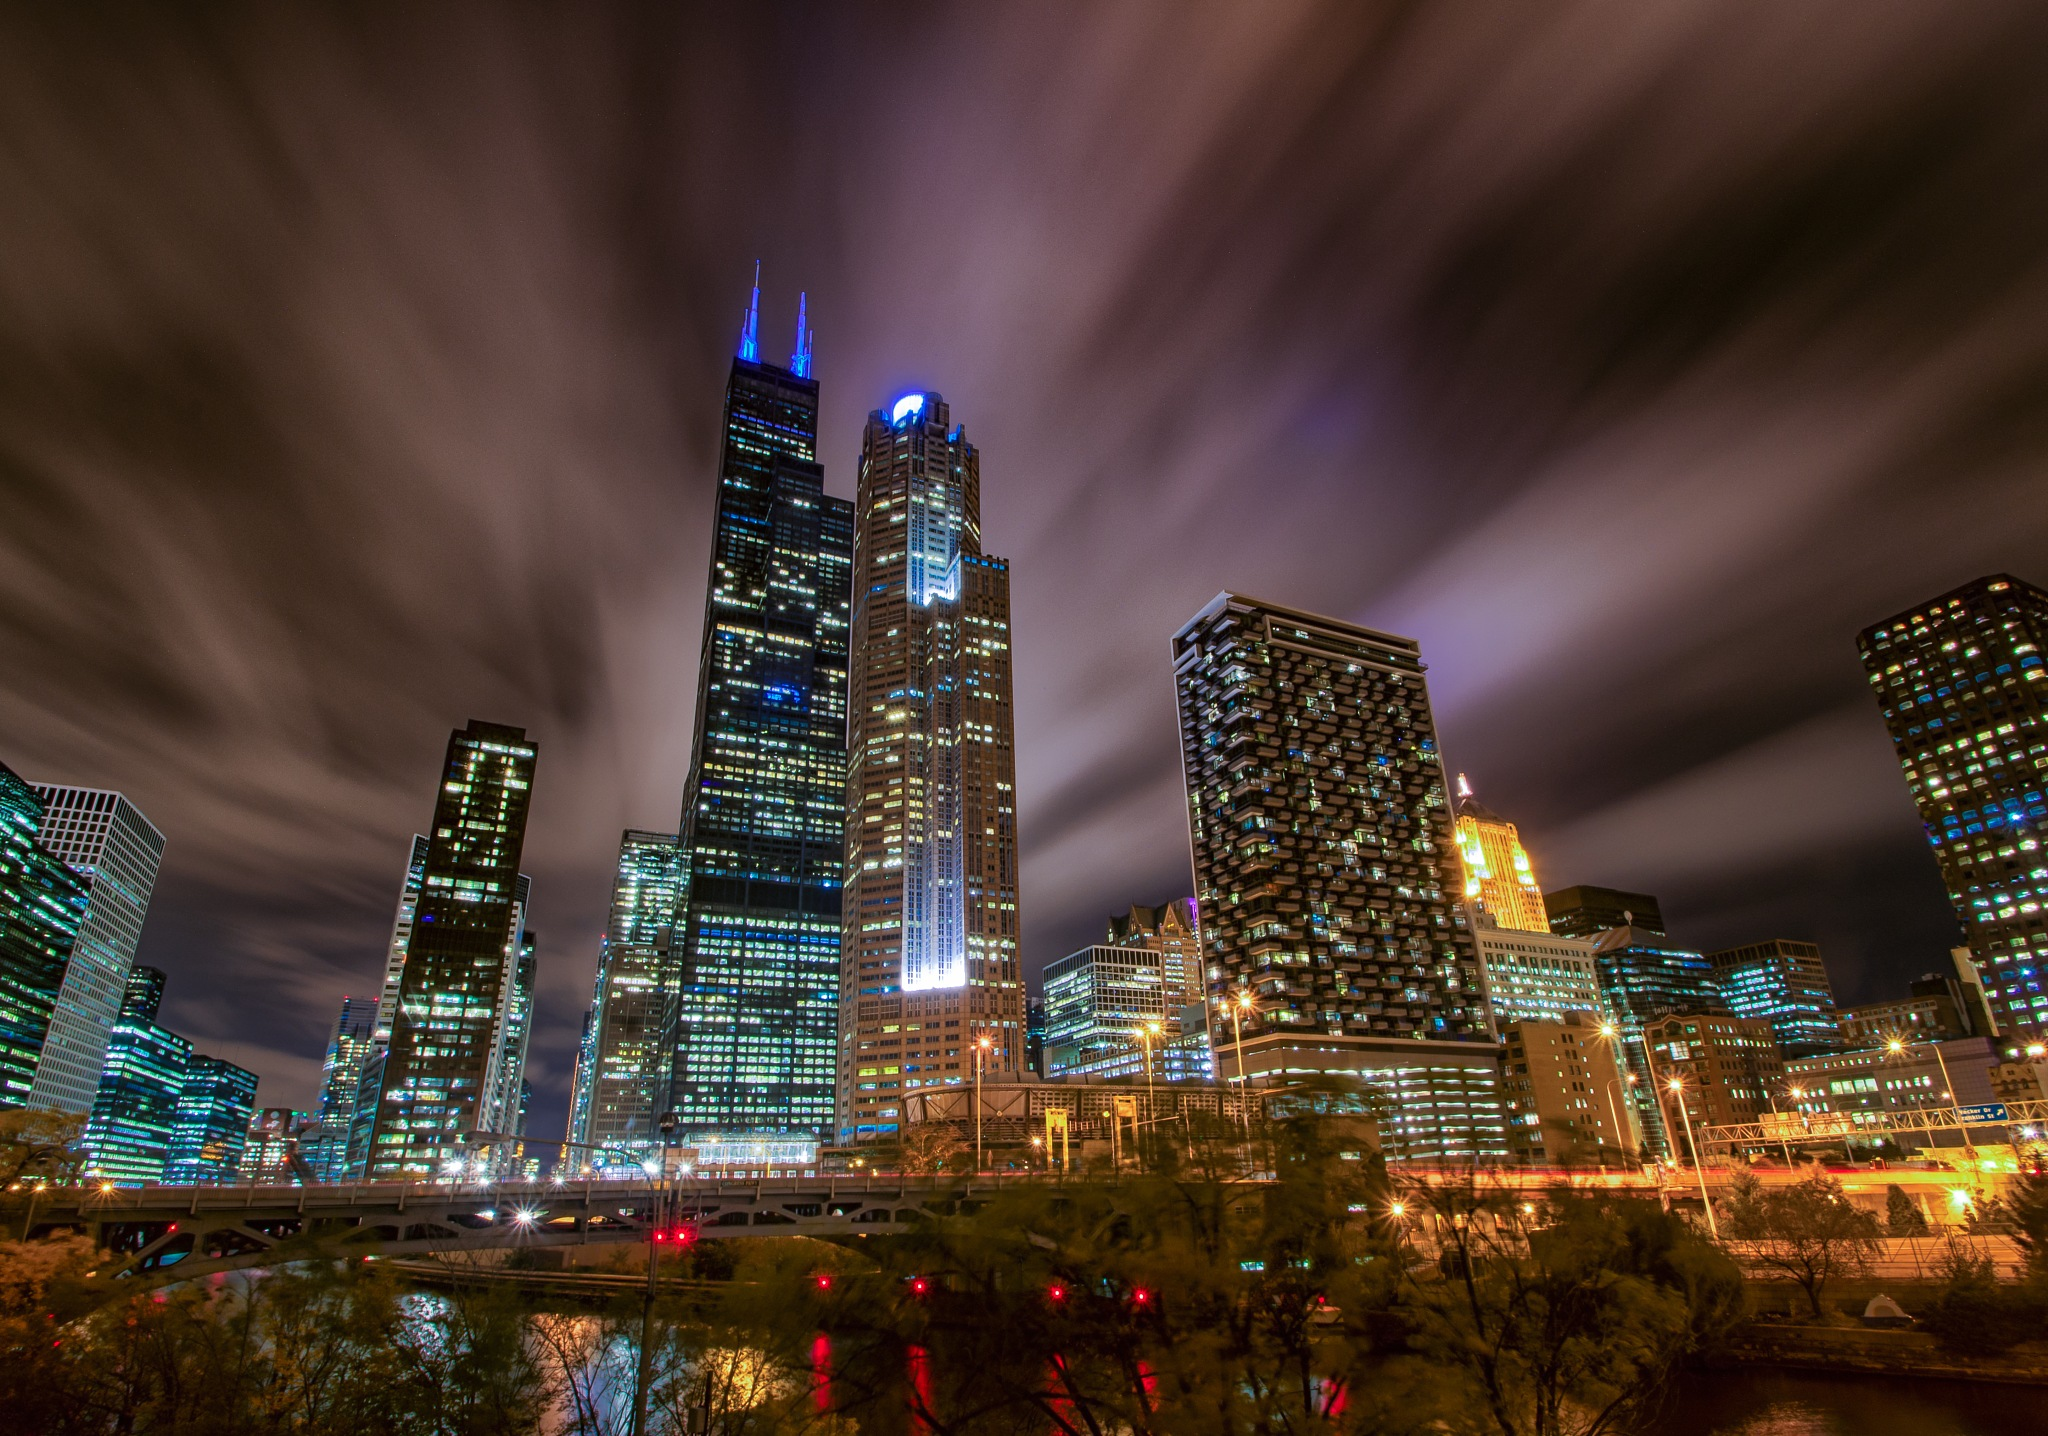 Chicago Blue by Raf Winterpacht